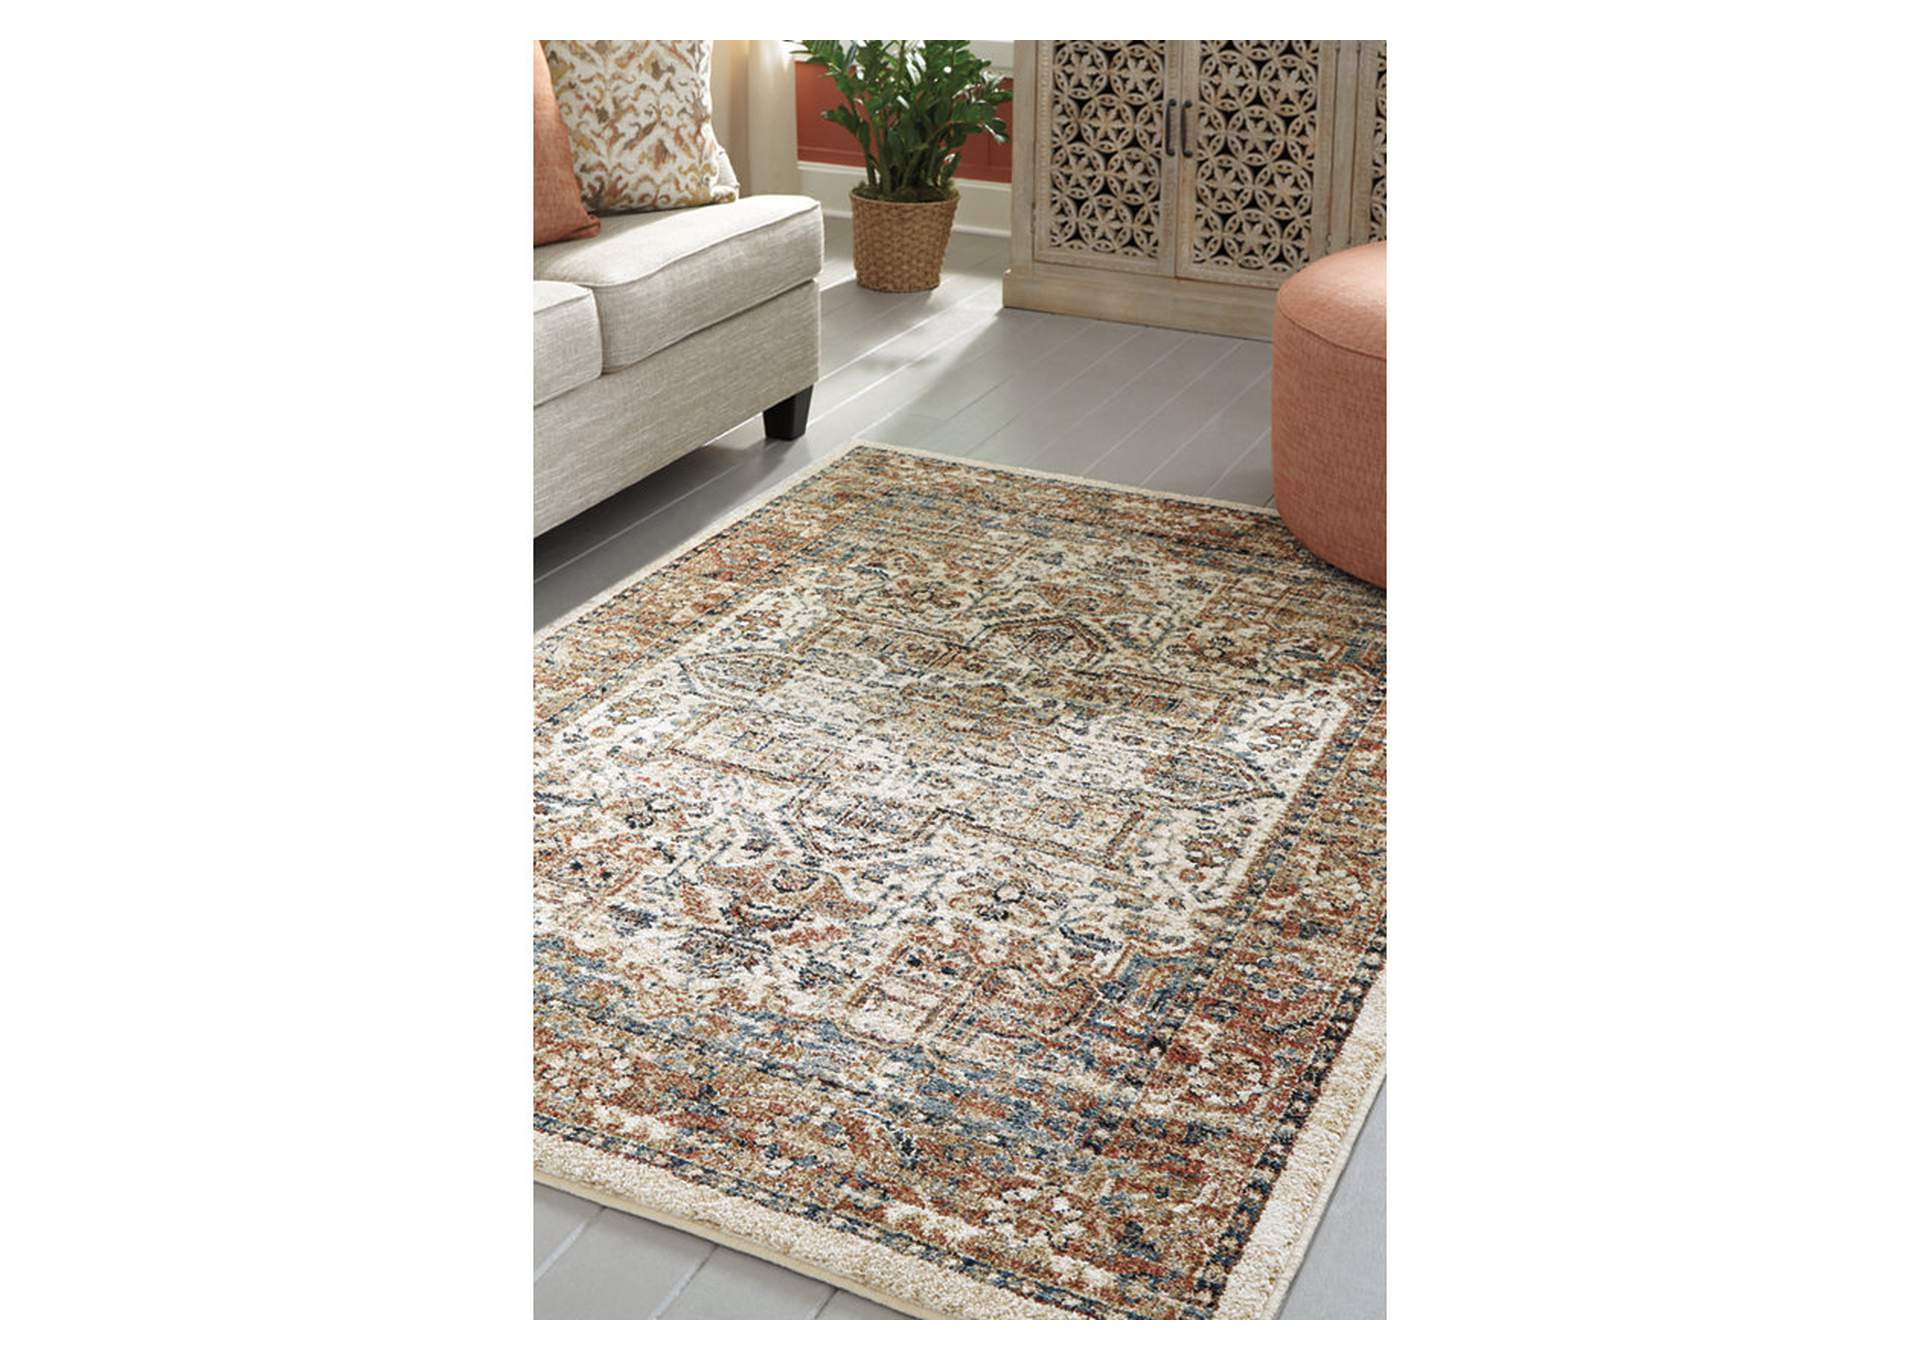 Jirair Tan/Blue/Rust Medium Rug,Signature Design By Ashley